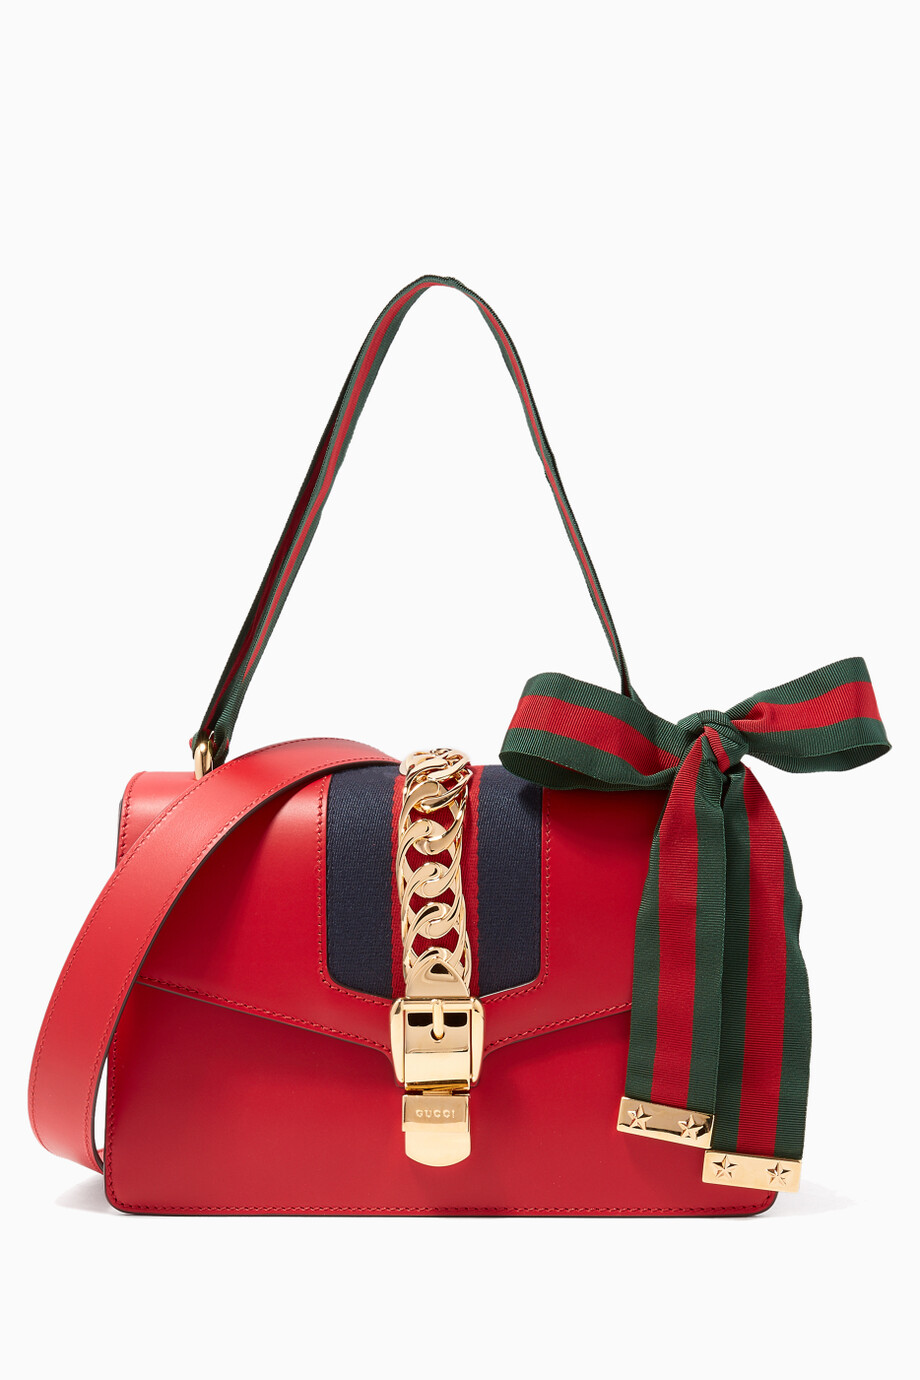 72c2ef8845e5 Shop Gucci Red Hibiscus Red Sylvie Shoulder Bag for Women | Ounass Saudi